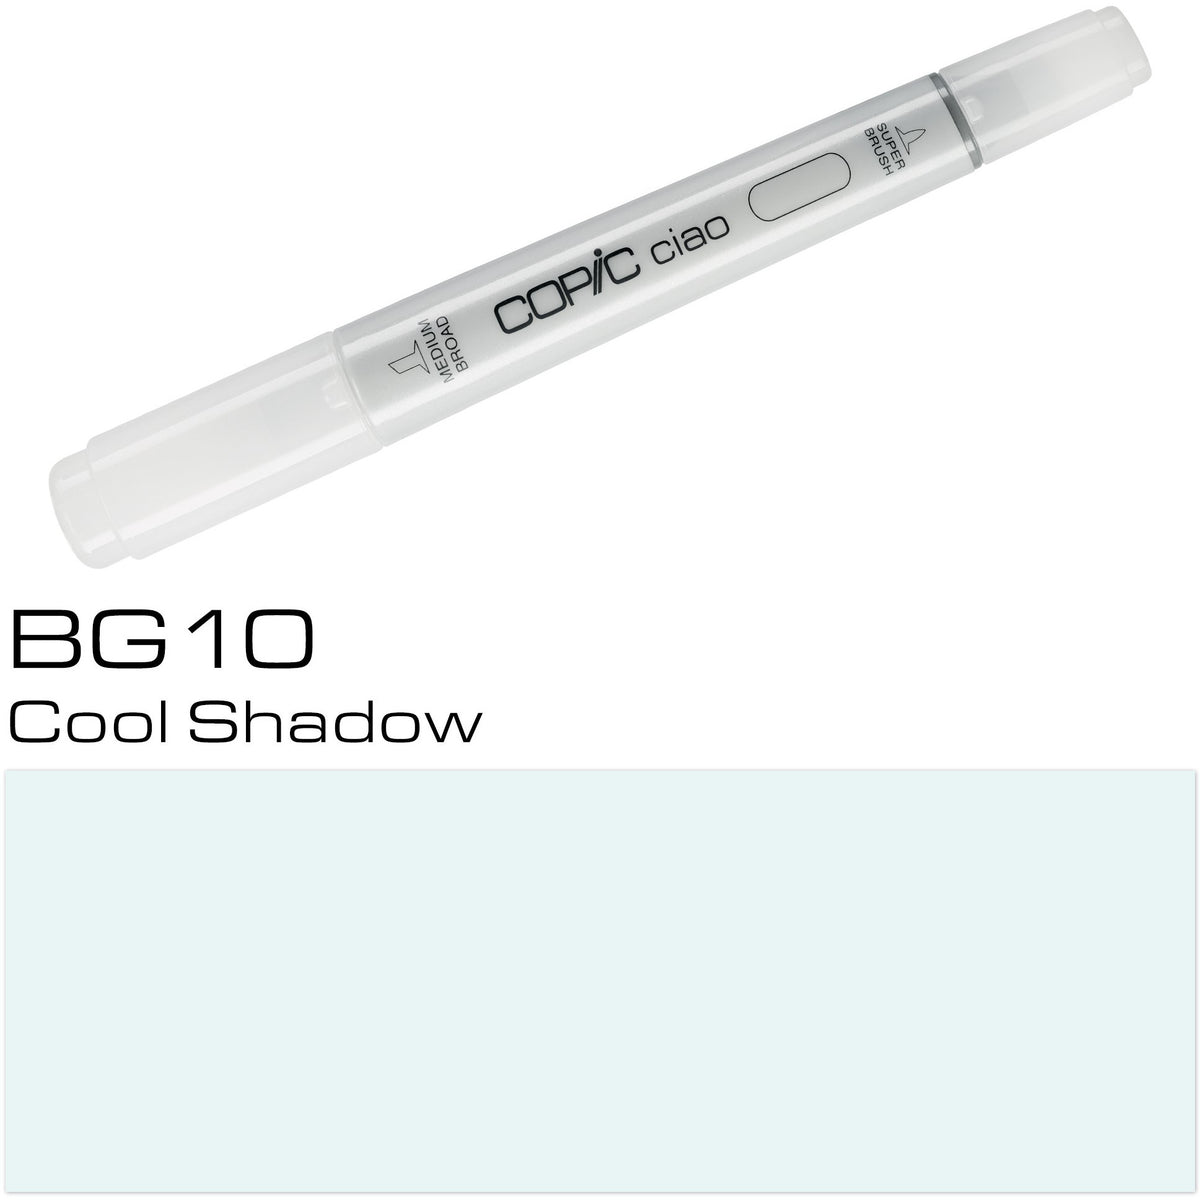 COPIC ciao Marker BG10